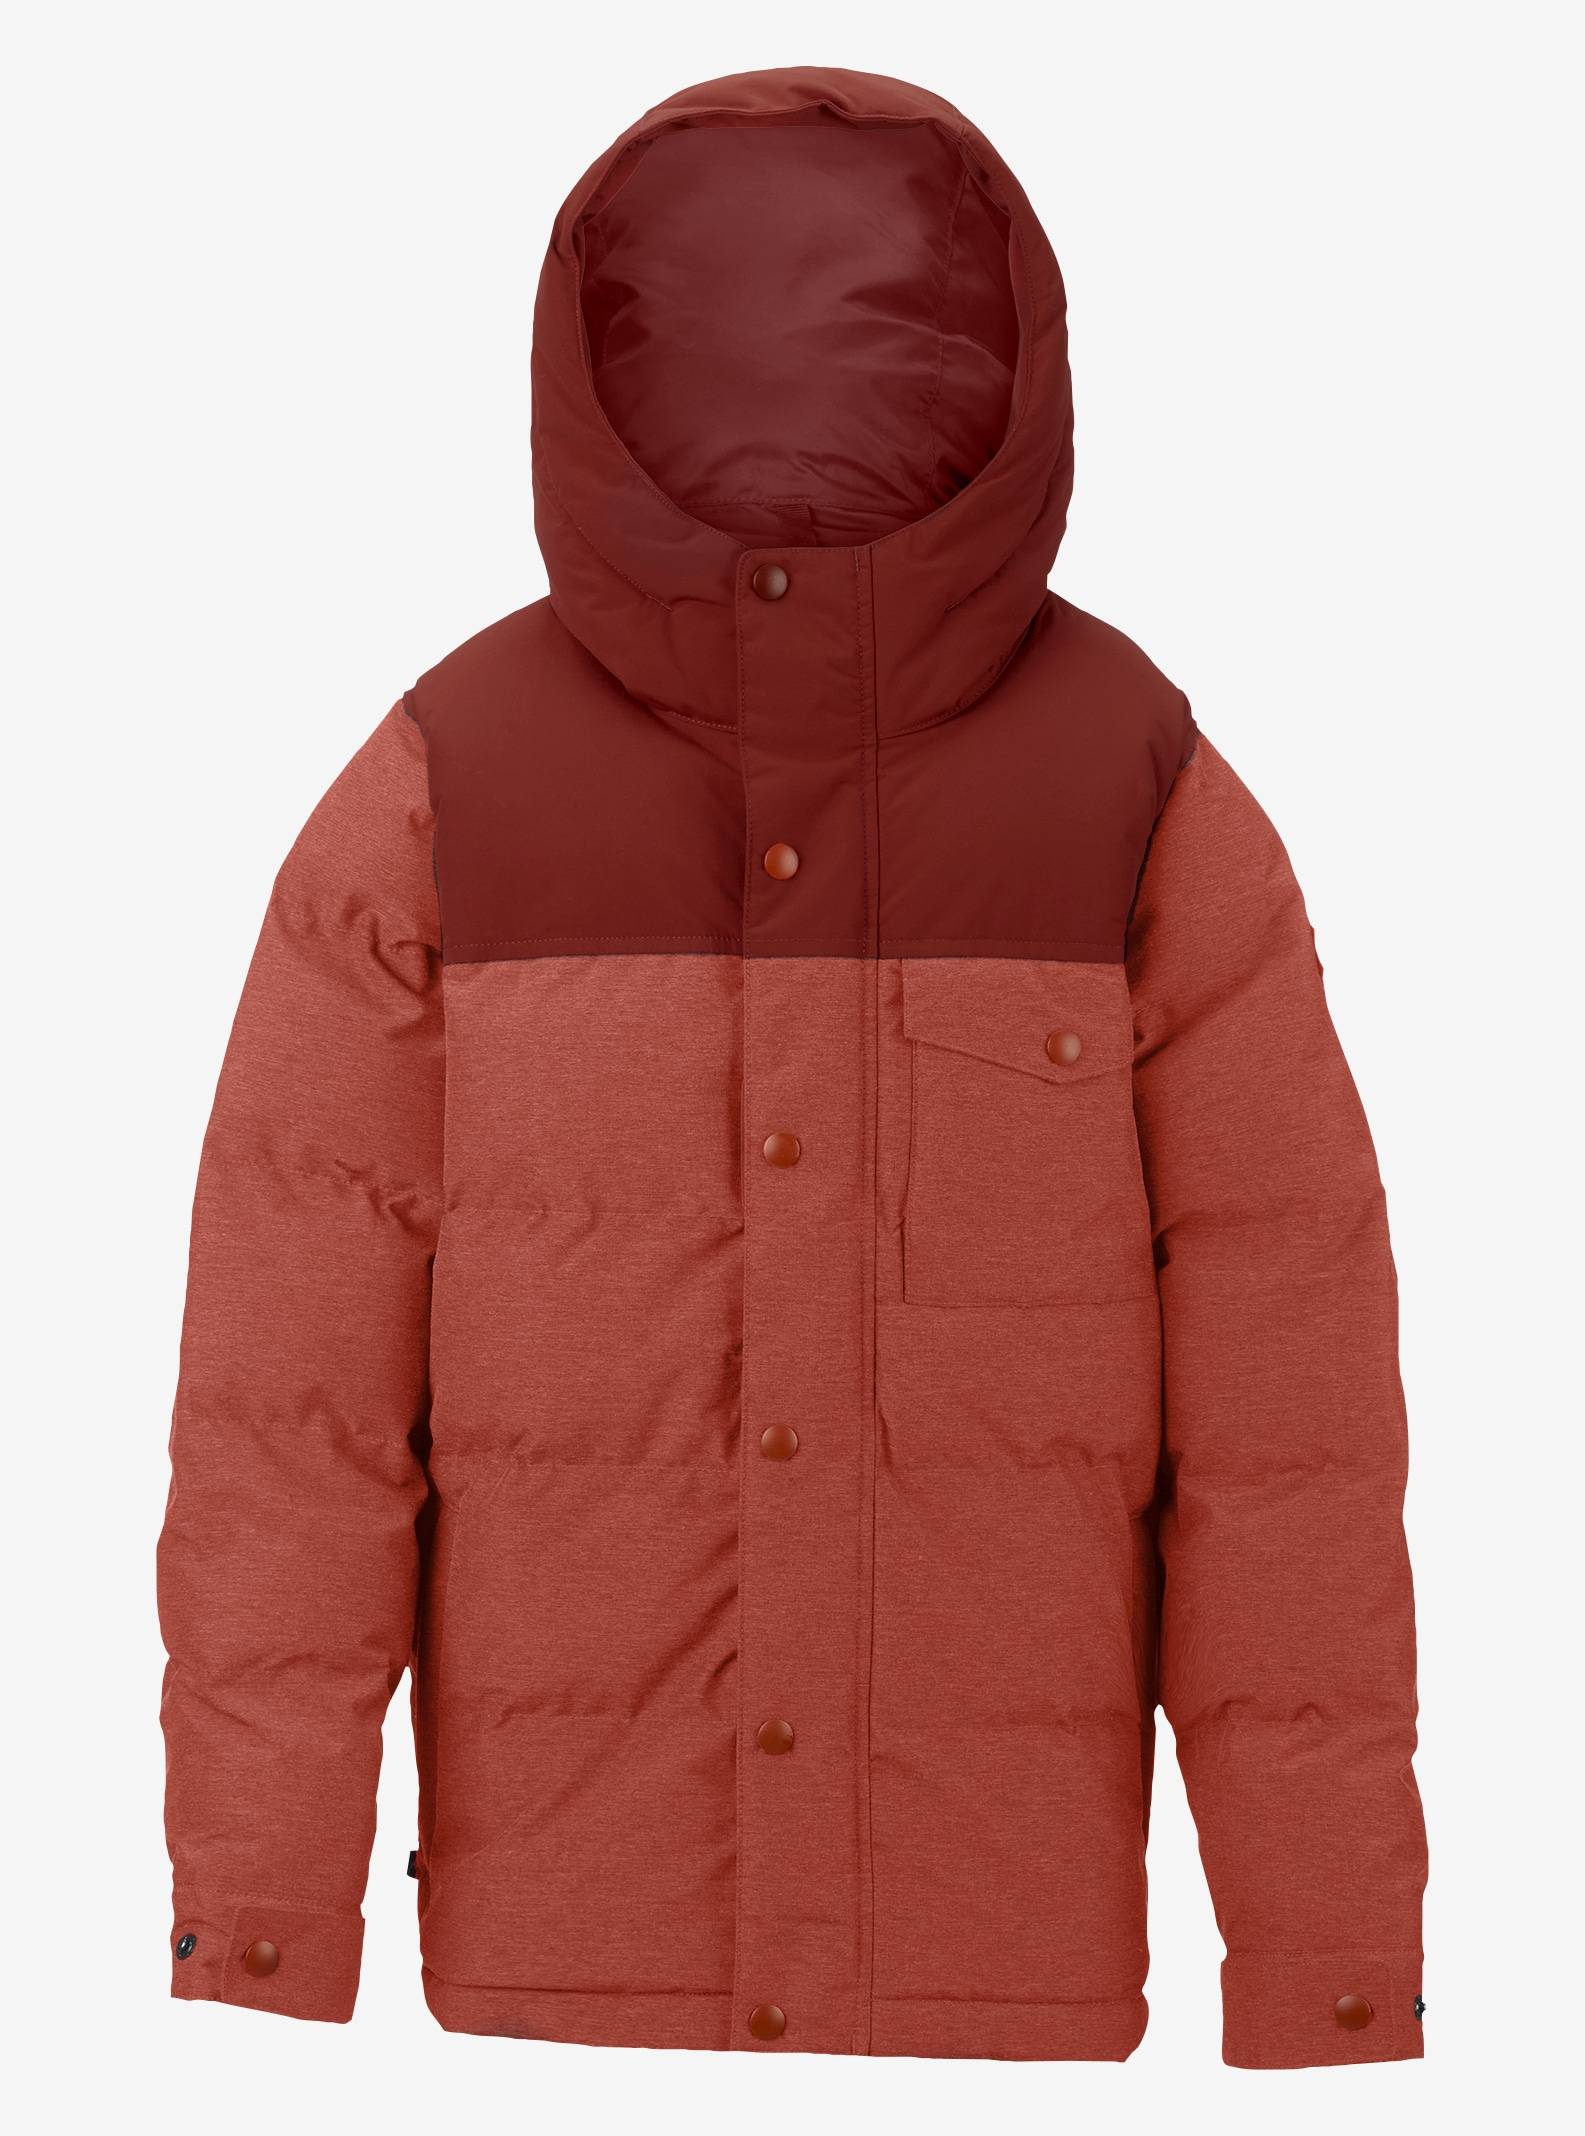 Boys' Burton Barnone Jacket shown in Bitters / Fired Brick